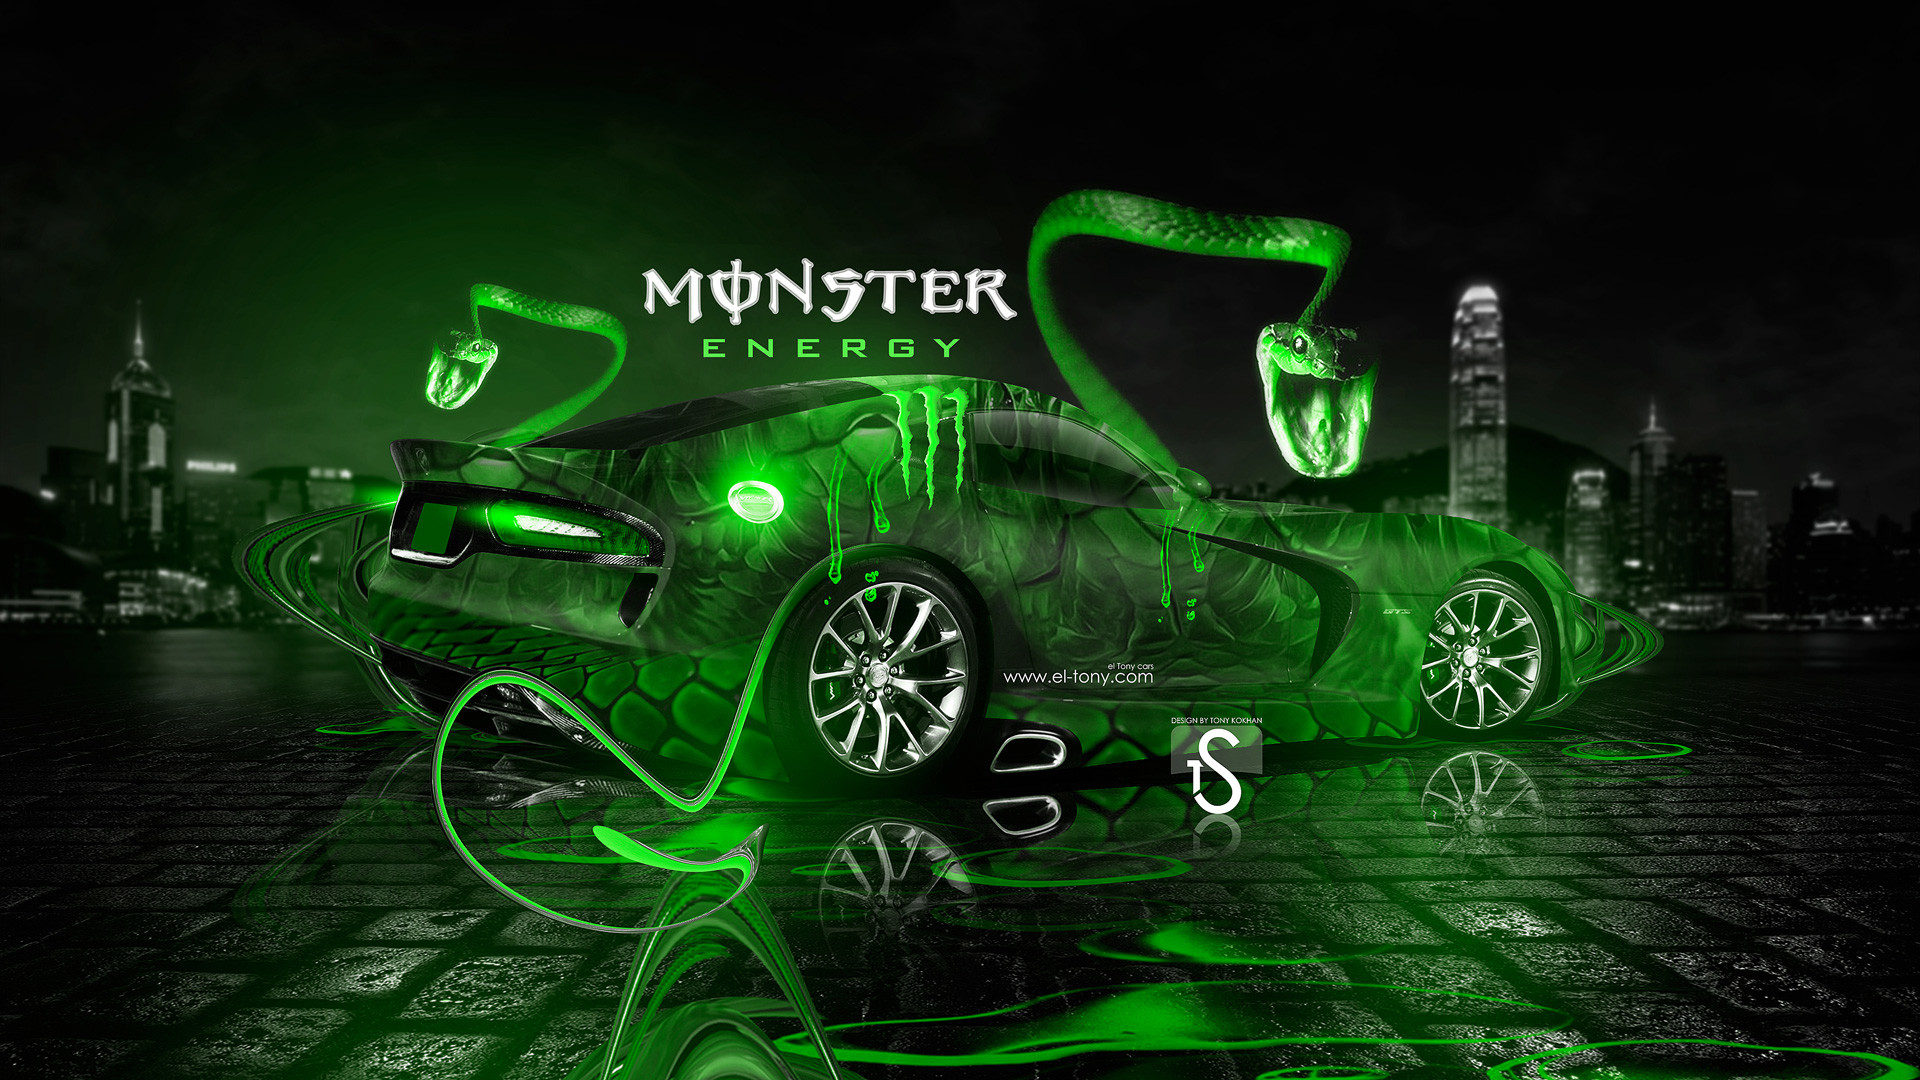 1920x1080 dodge viper fantasy snake car 2013 dodge viper fantasy snake car 2013